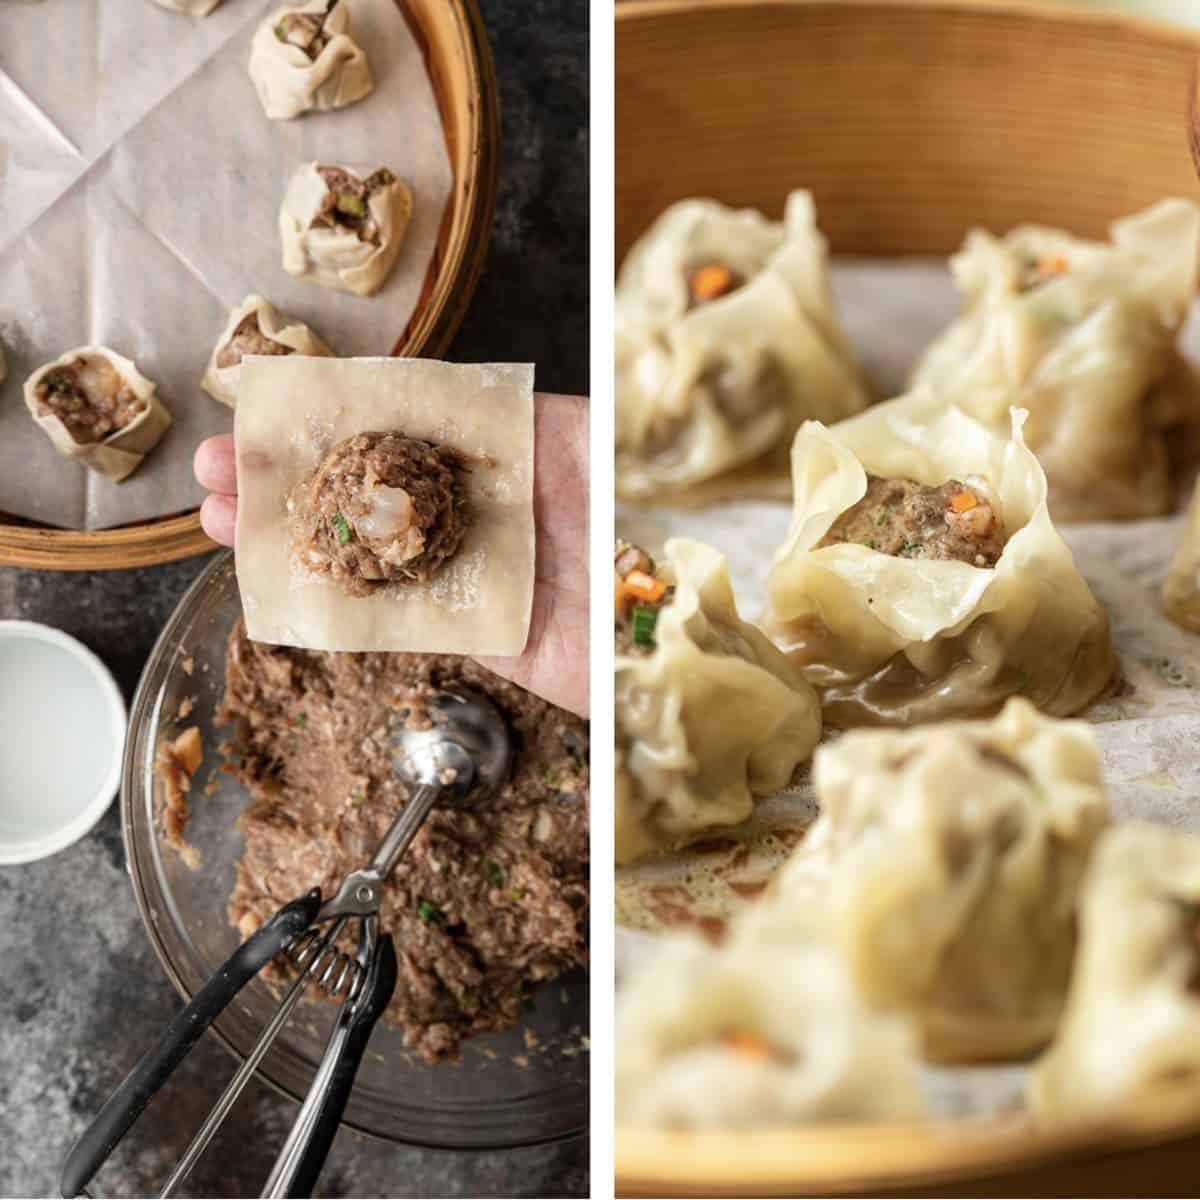 side by side photos: adding filling to dumpling wrappers and filled dumplings in bamboo steamer